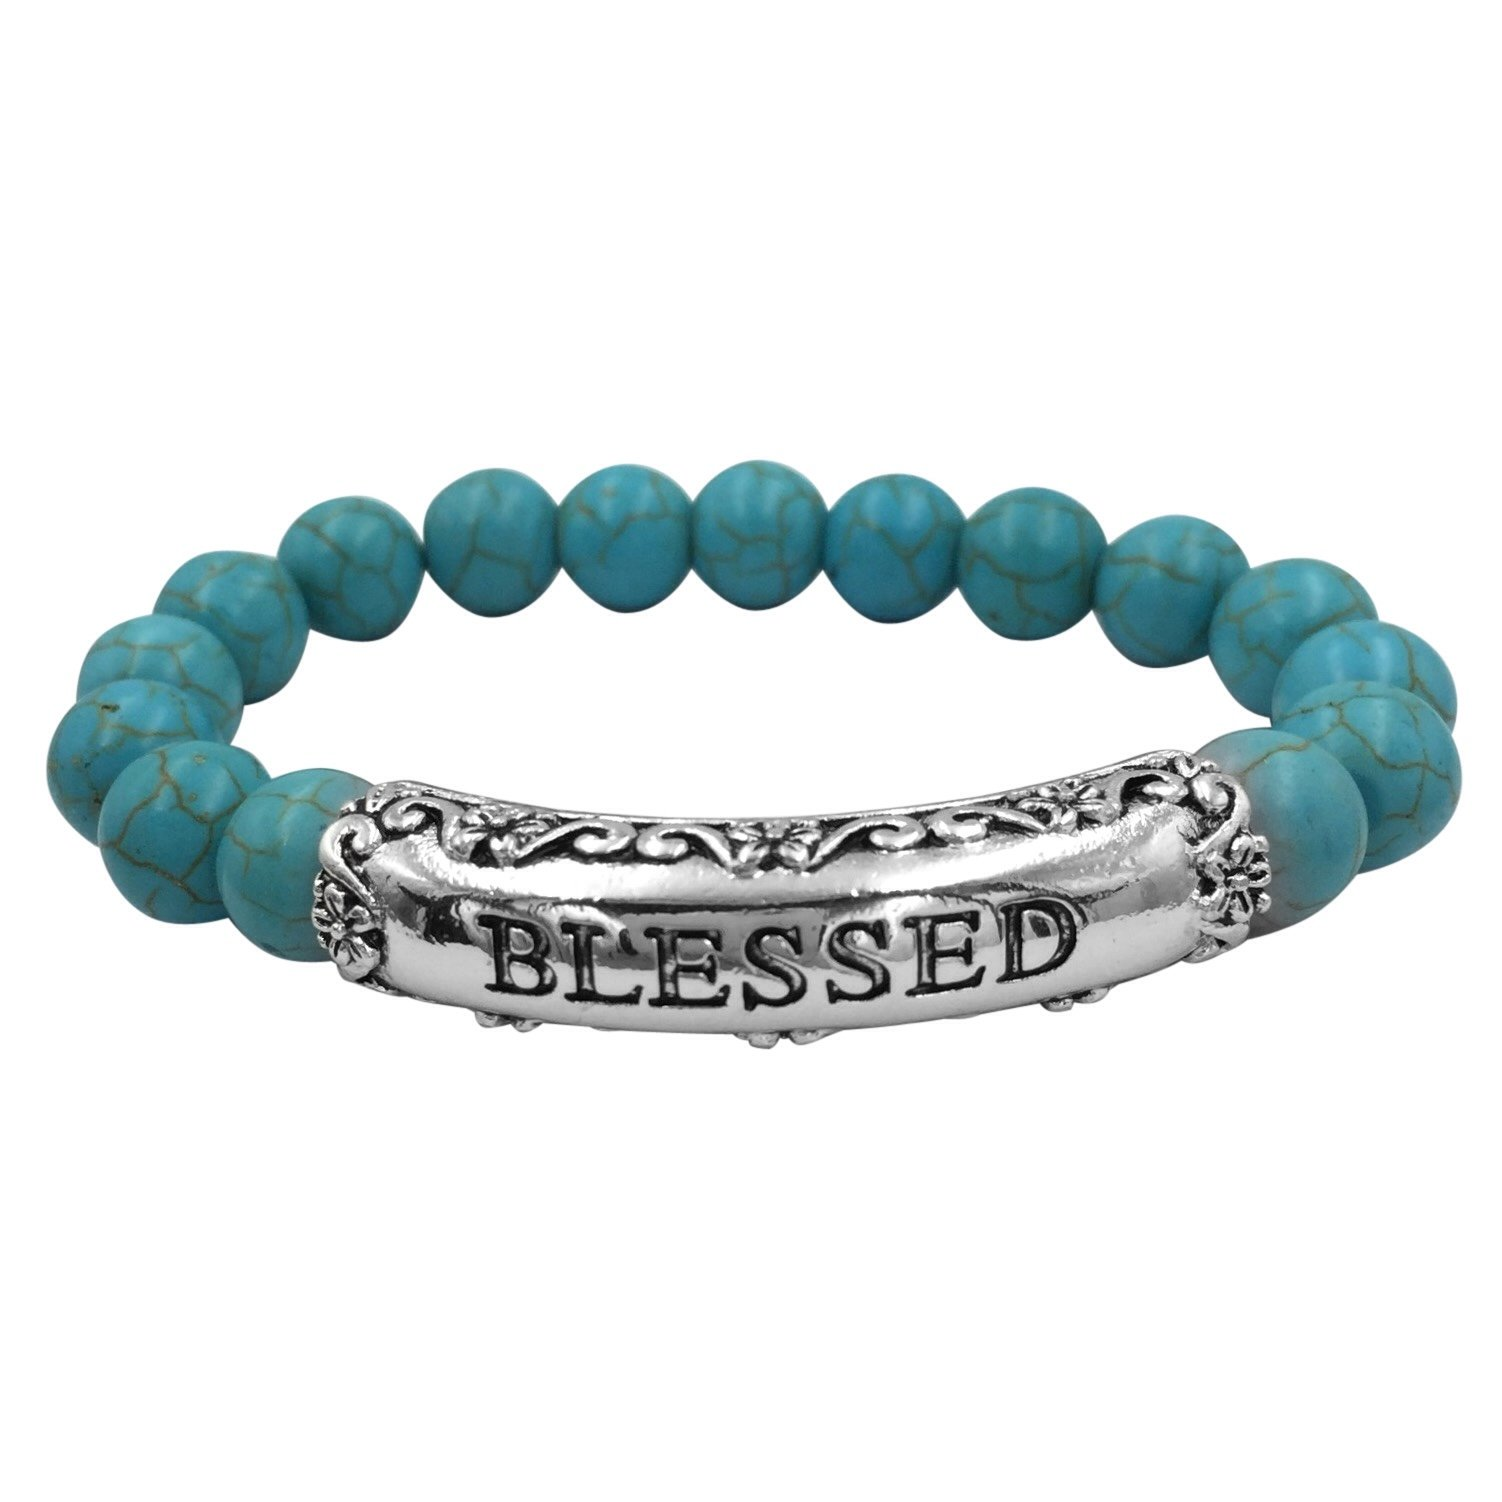 Inspirational Worded Single Strand Beaded Silver Tone Stretch Bracelet (Imitation Turquoise Blessed)